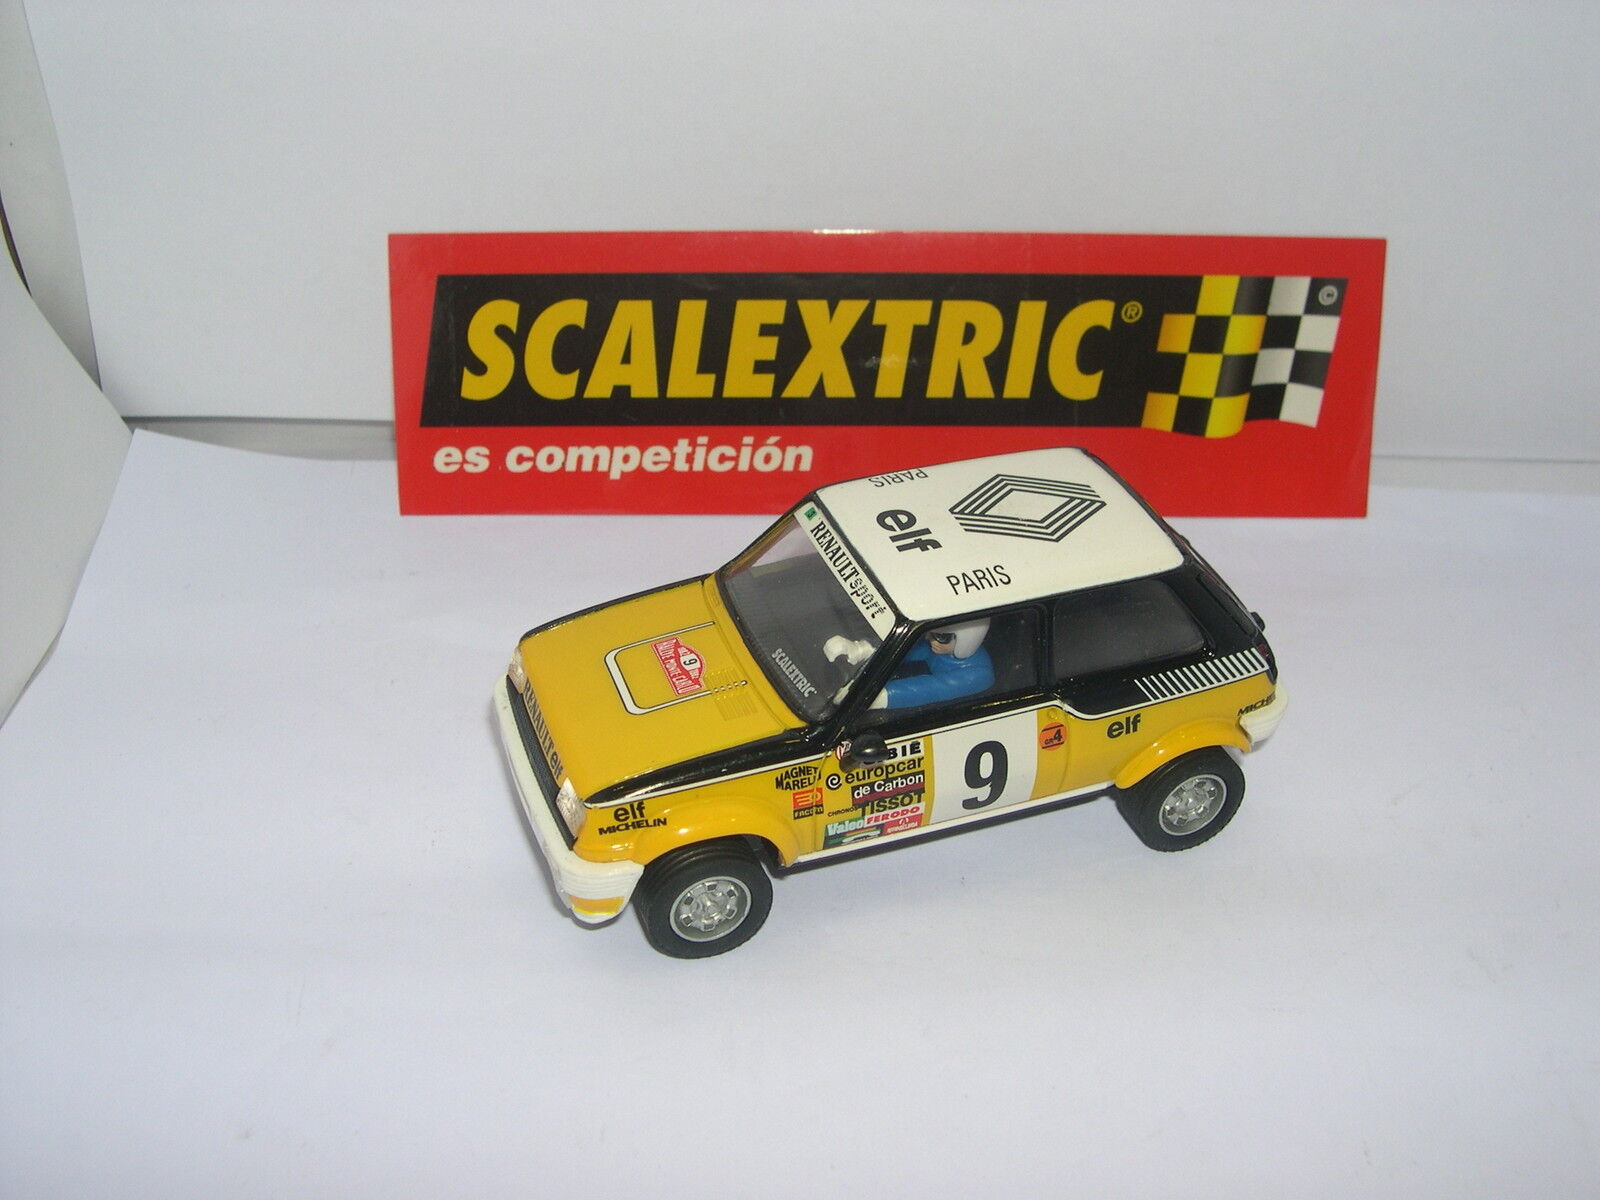 SCALEXTRIC SCX SPAIN PLANET CARS MYTHICAL RENAULT 5 CUP RAGNOTTI-ANDRIE